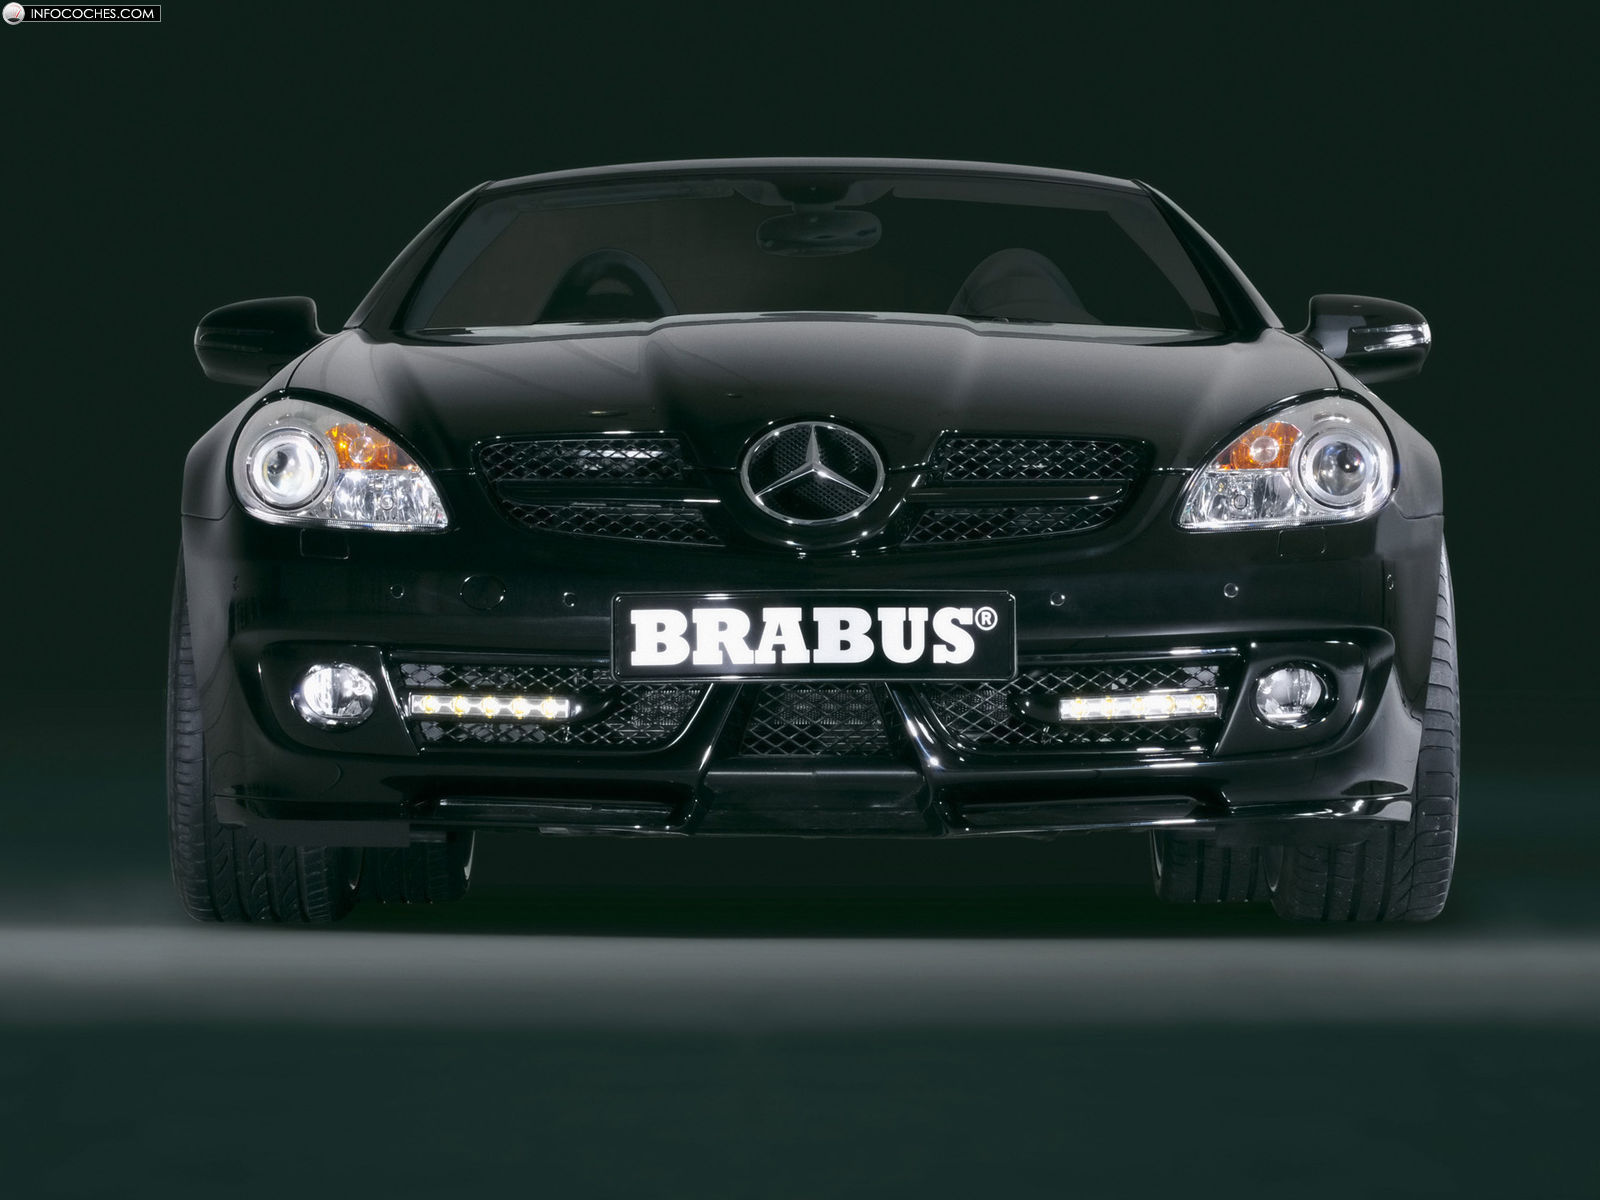 2019 Brabus Mercedes Benz SLK photo - 3